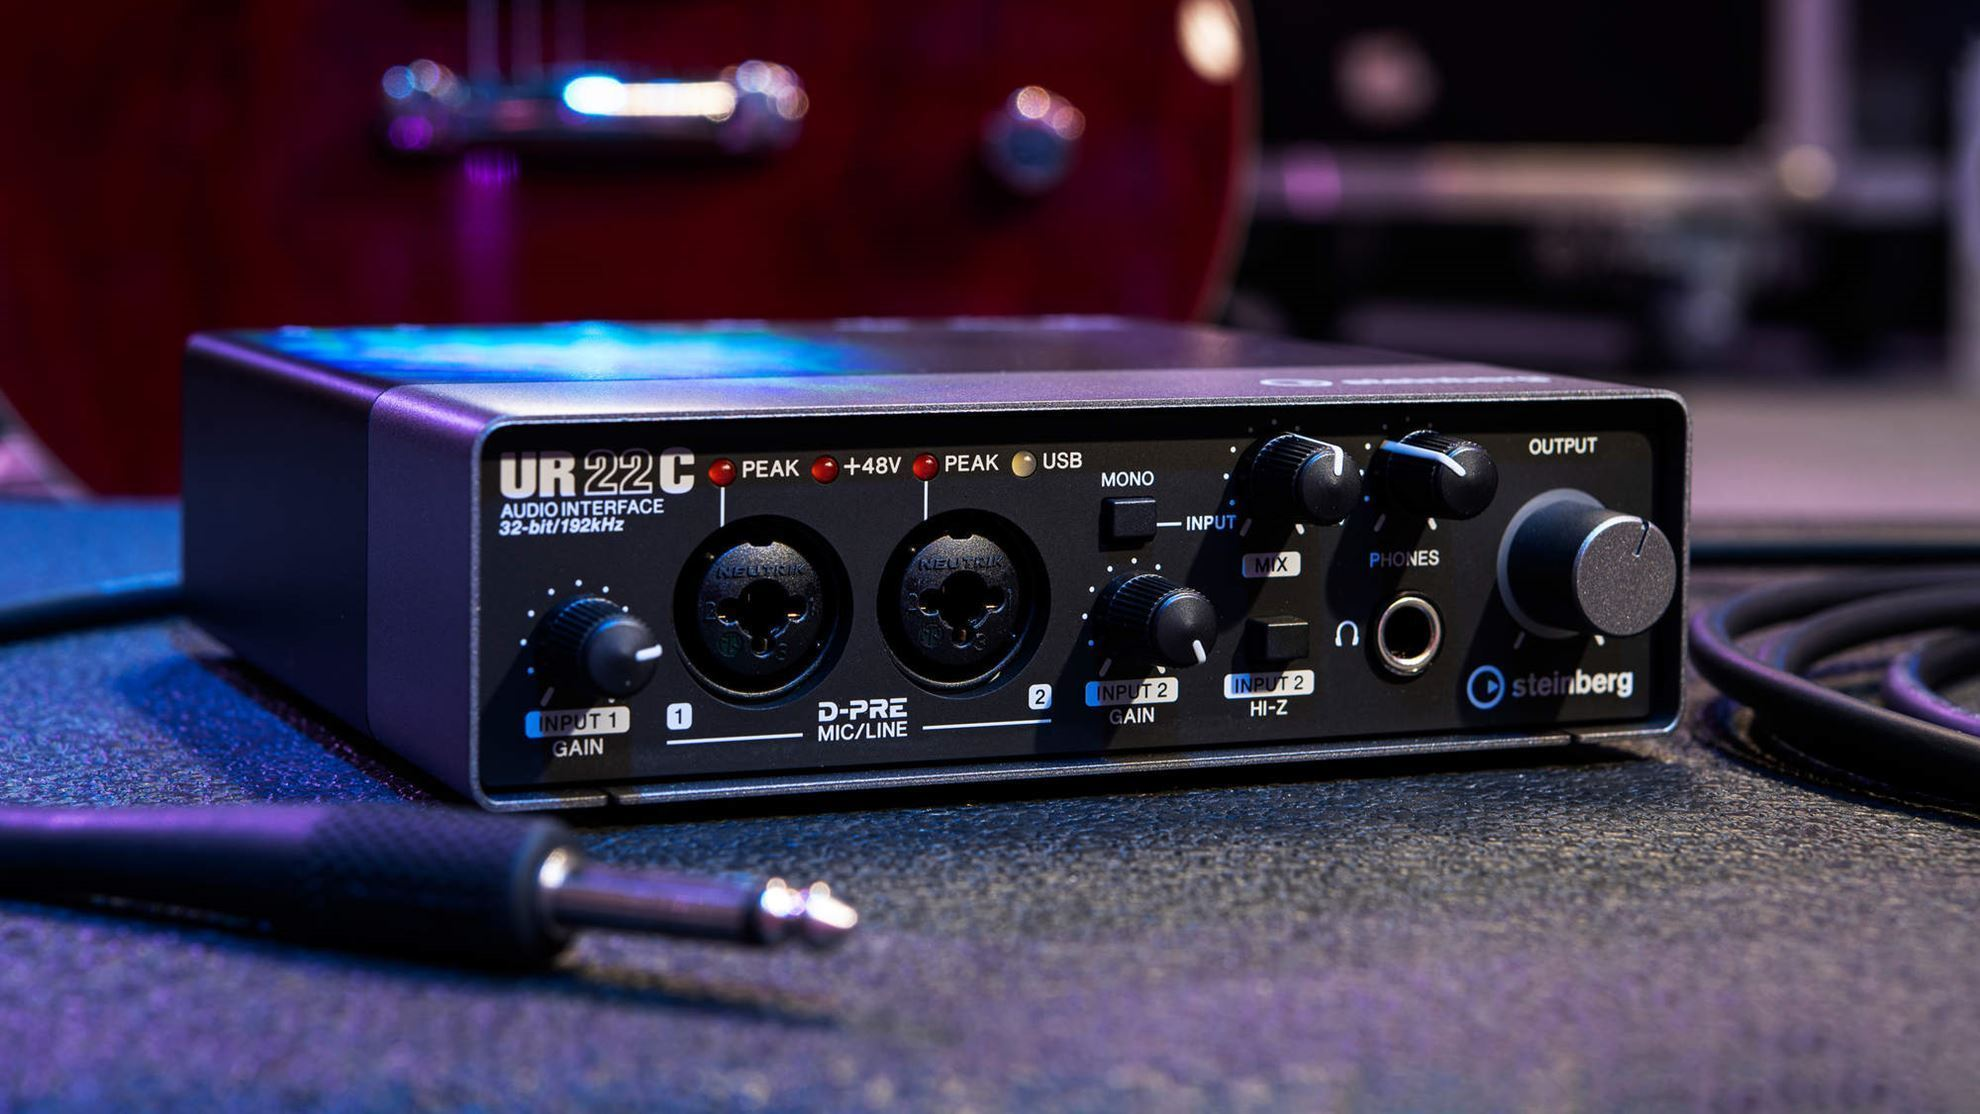 Steinberg UR22C USB 3 Audio Interface with Cubase DAW - Angle Front